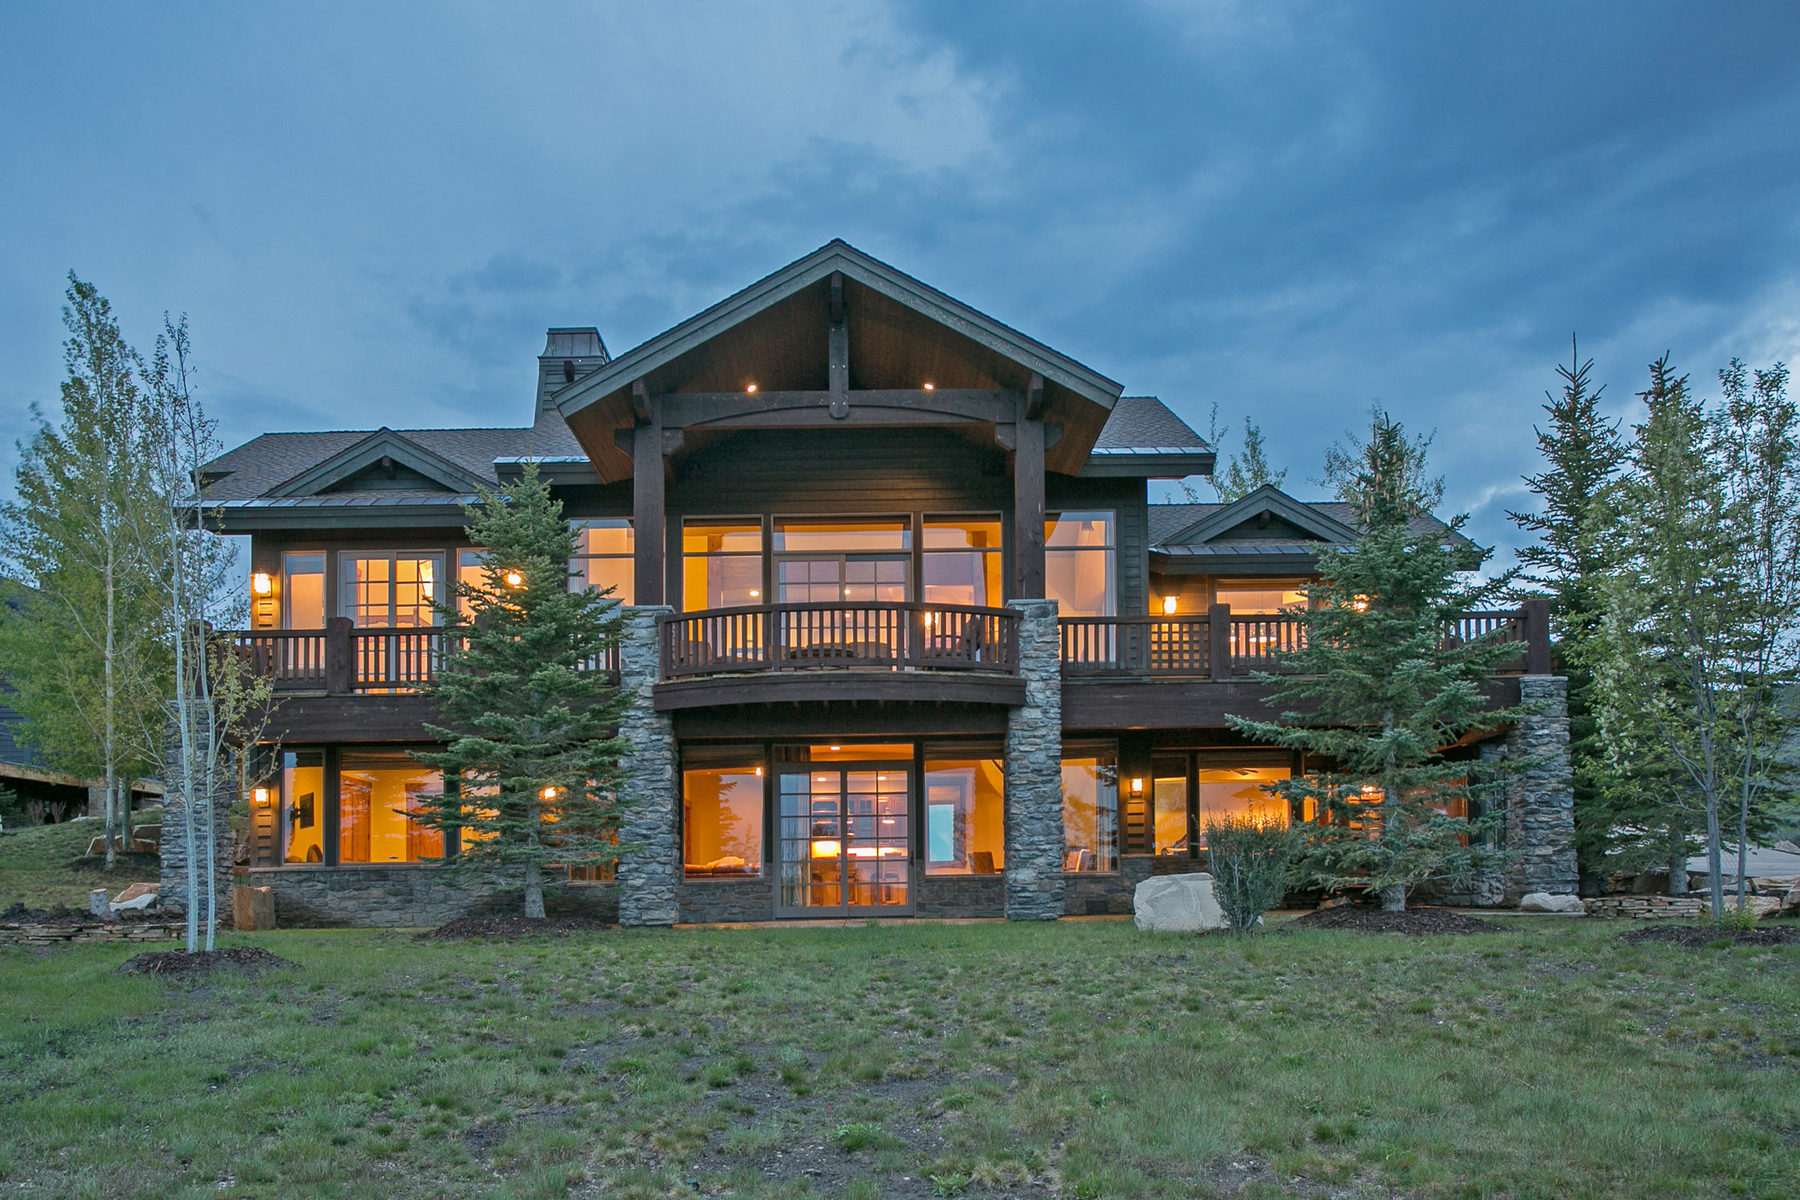 Casa Unifamiliar por un Venta en Beautiful Signal Hill Home 3280 E Westview Trail Park City, Utah 84098 Estados Unidos